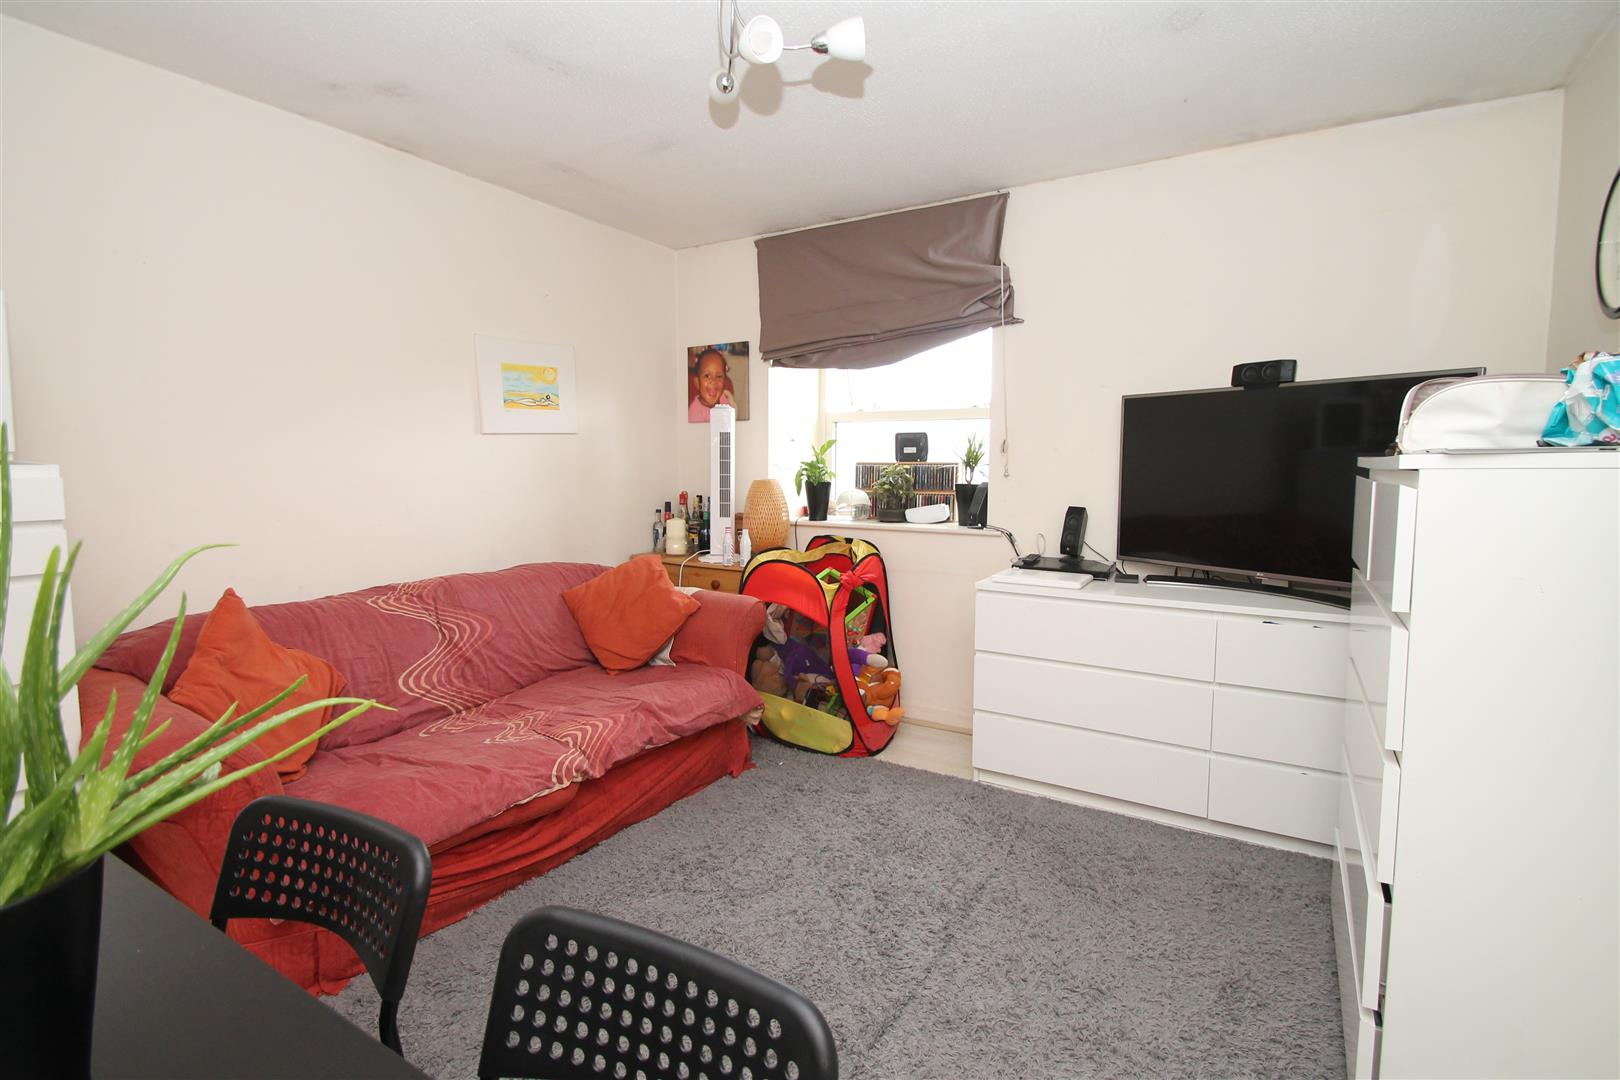 1 Bedroom Studio Flat for sale in Millstream Close, London N13 6EF